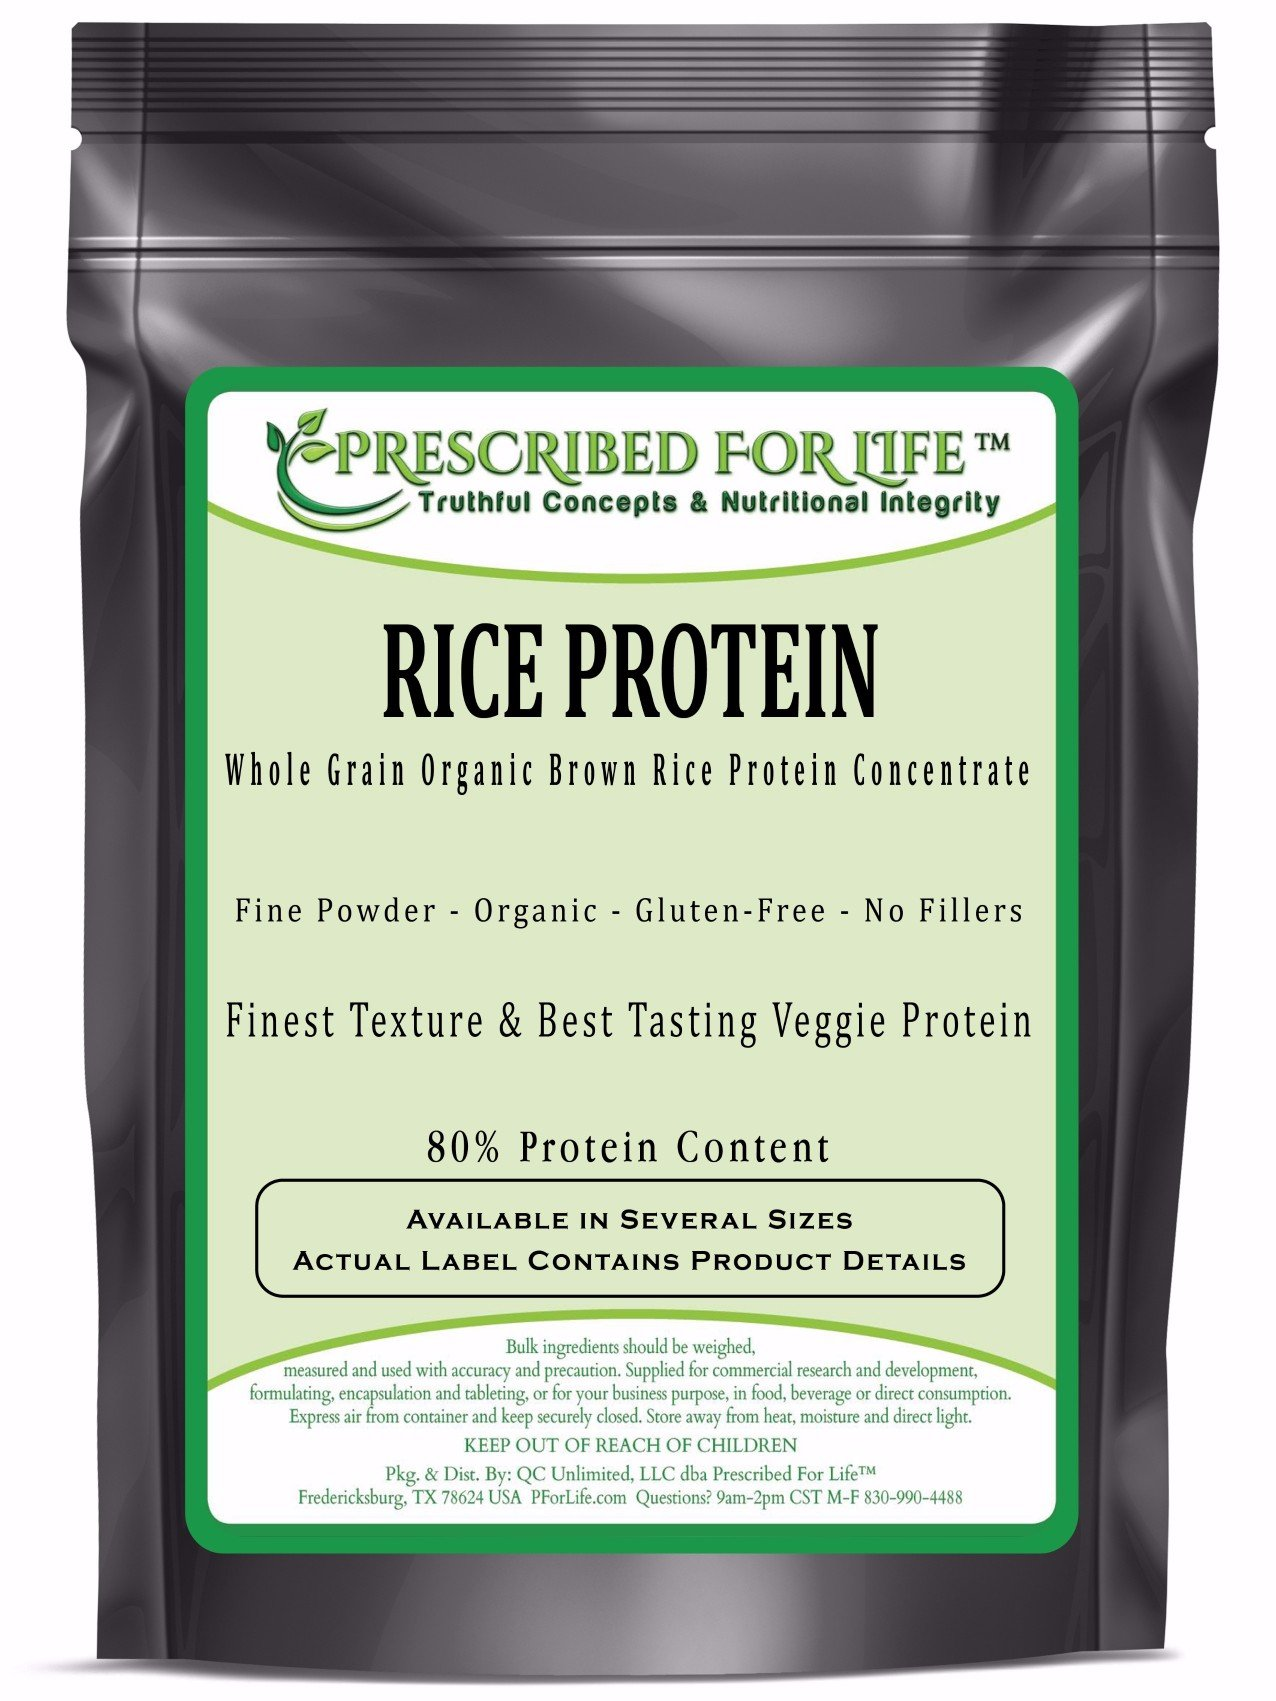 Rice Protein - Whole Grain Brown Rice Protein Concentrate - 80% Protein ING: Organic Powder, 2 kg